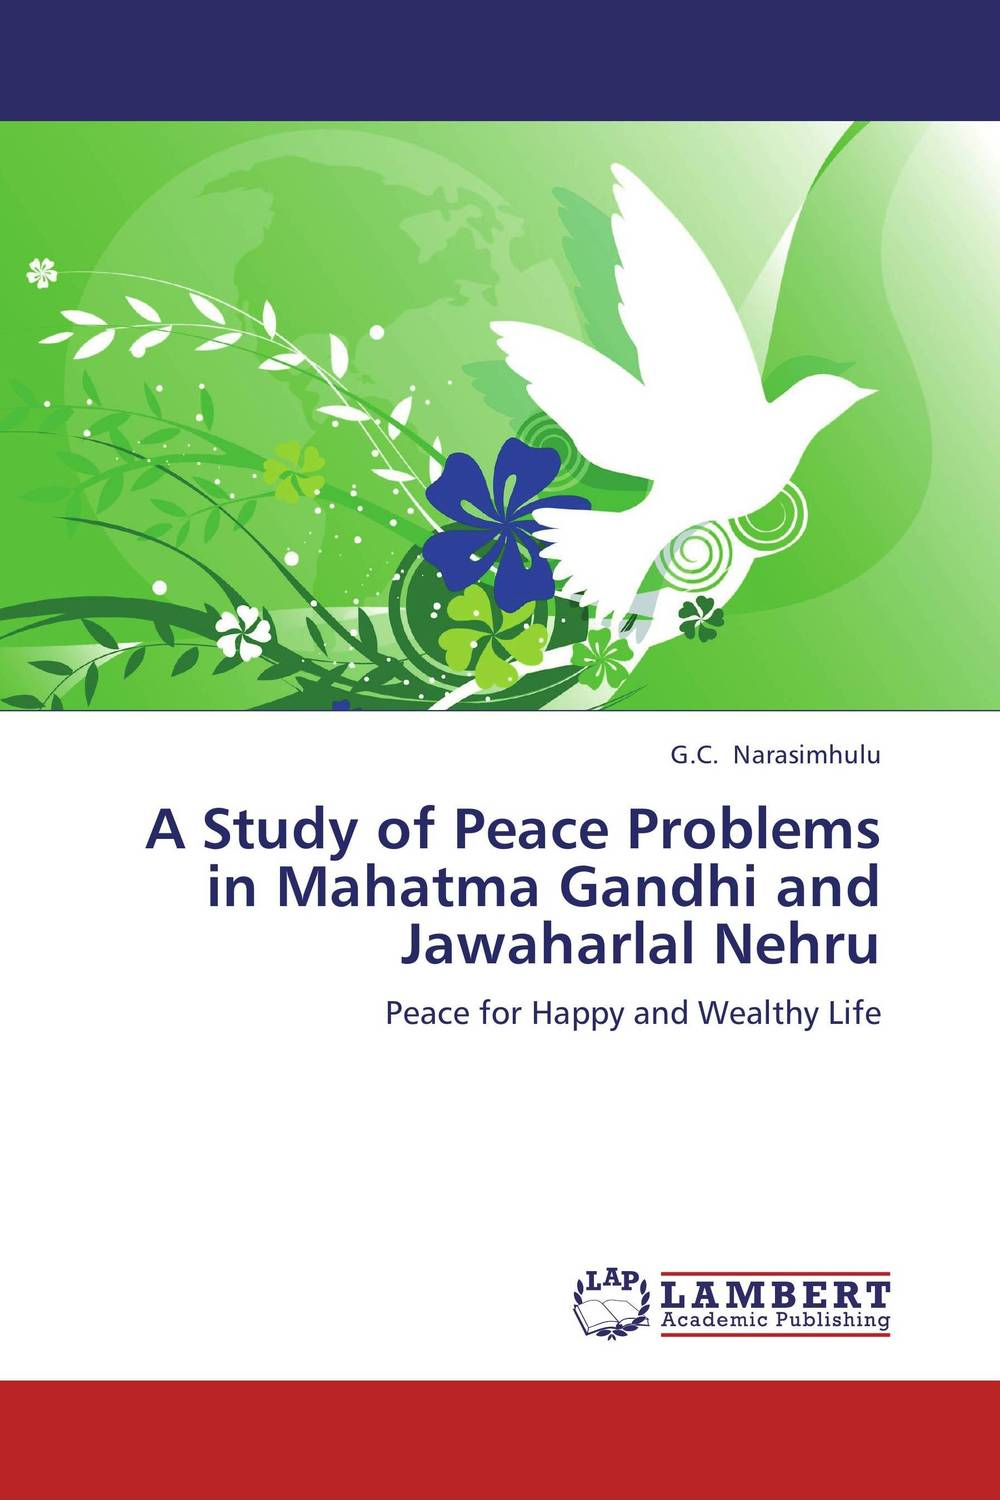 A Study of Peace Problems in Mahatma Gandhi and Jawaharlal Nehru gregorian masters of chant moments of peace in ireland